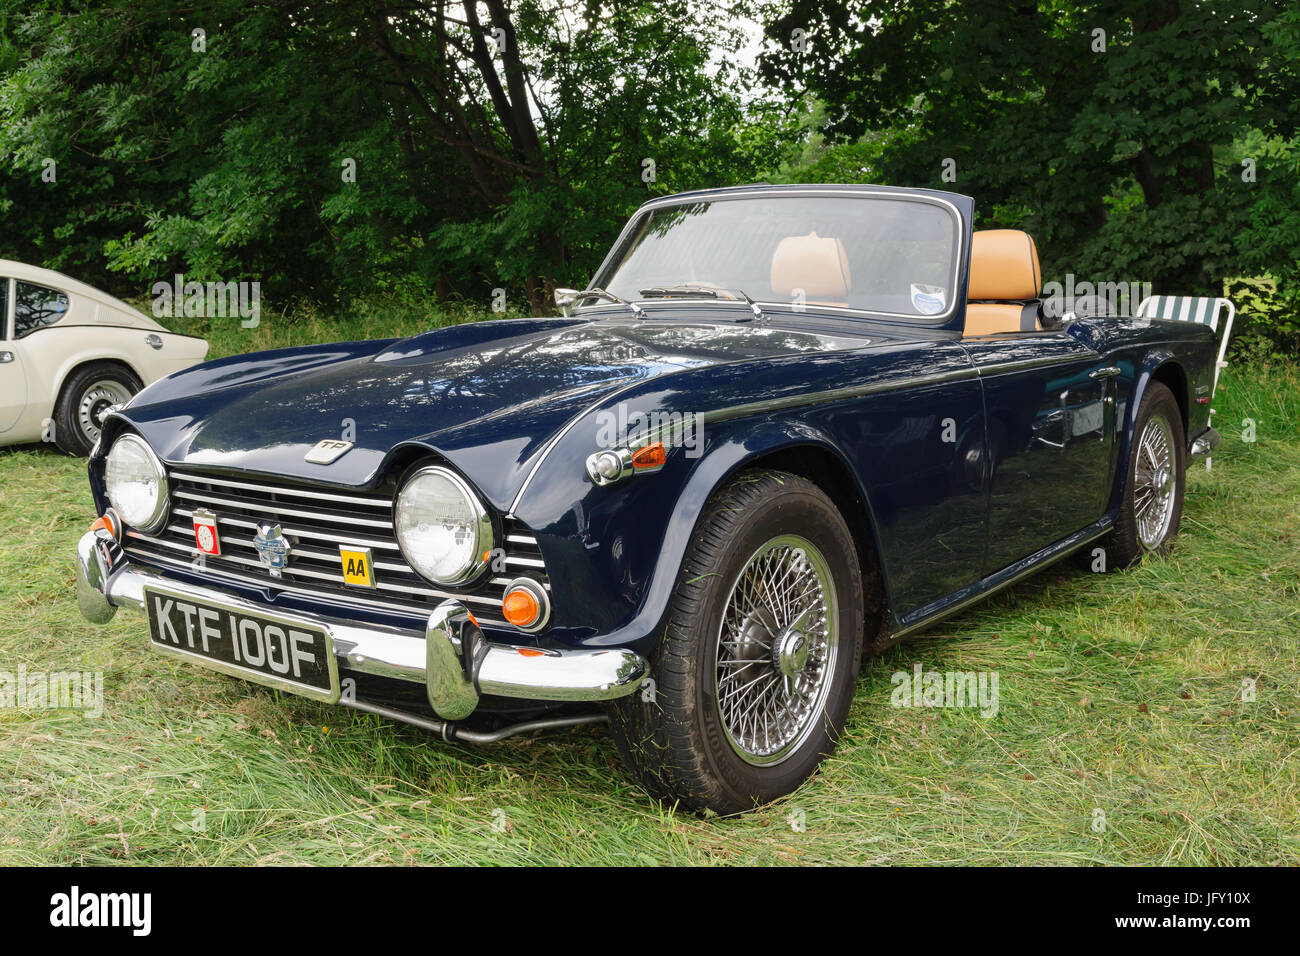 triumph tr5 convertible a classic british two seat sports car or stock photo royalty free image. Black Bedroom Furniture Sets. Home Design Ideas